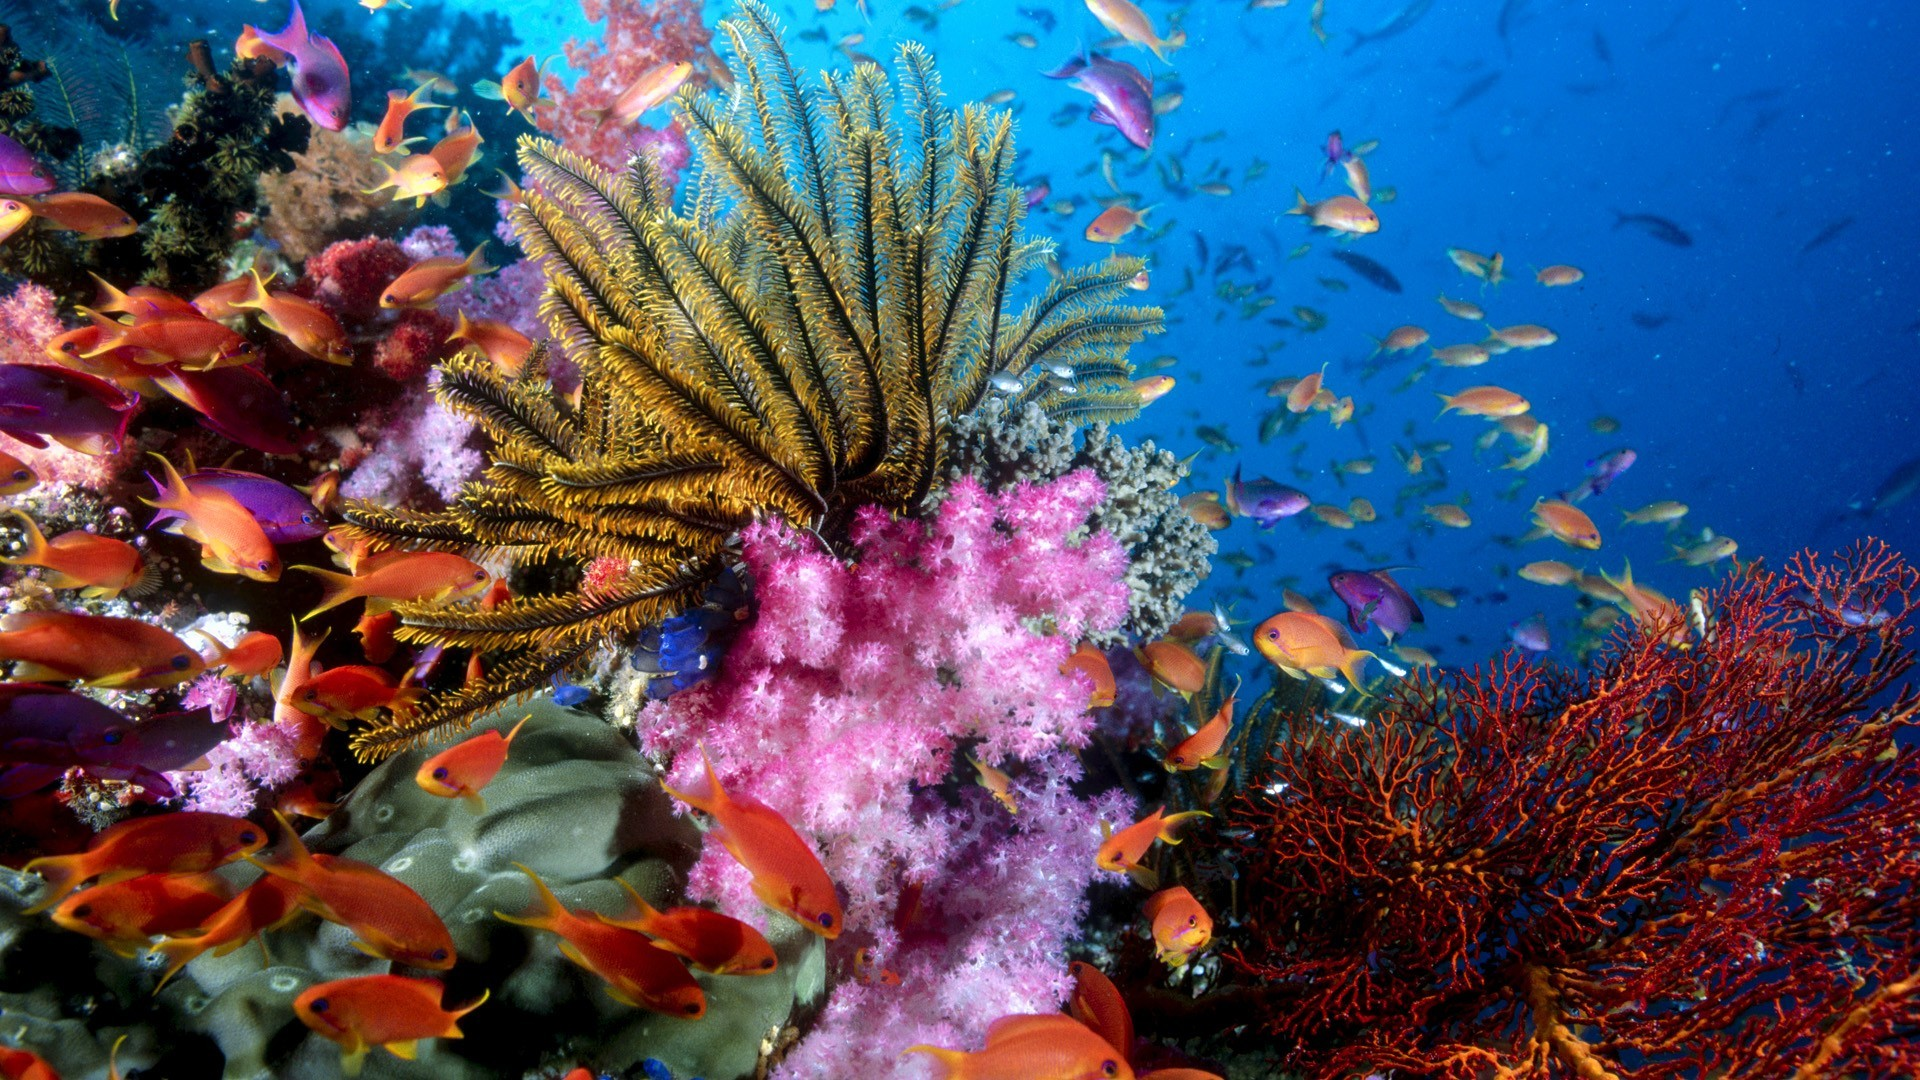 Res: 1920x1080, Colorful Sea Creatures HD Wallpaper